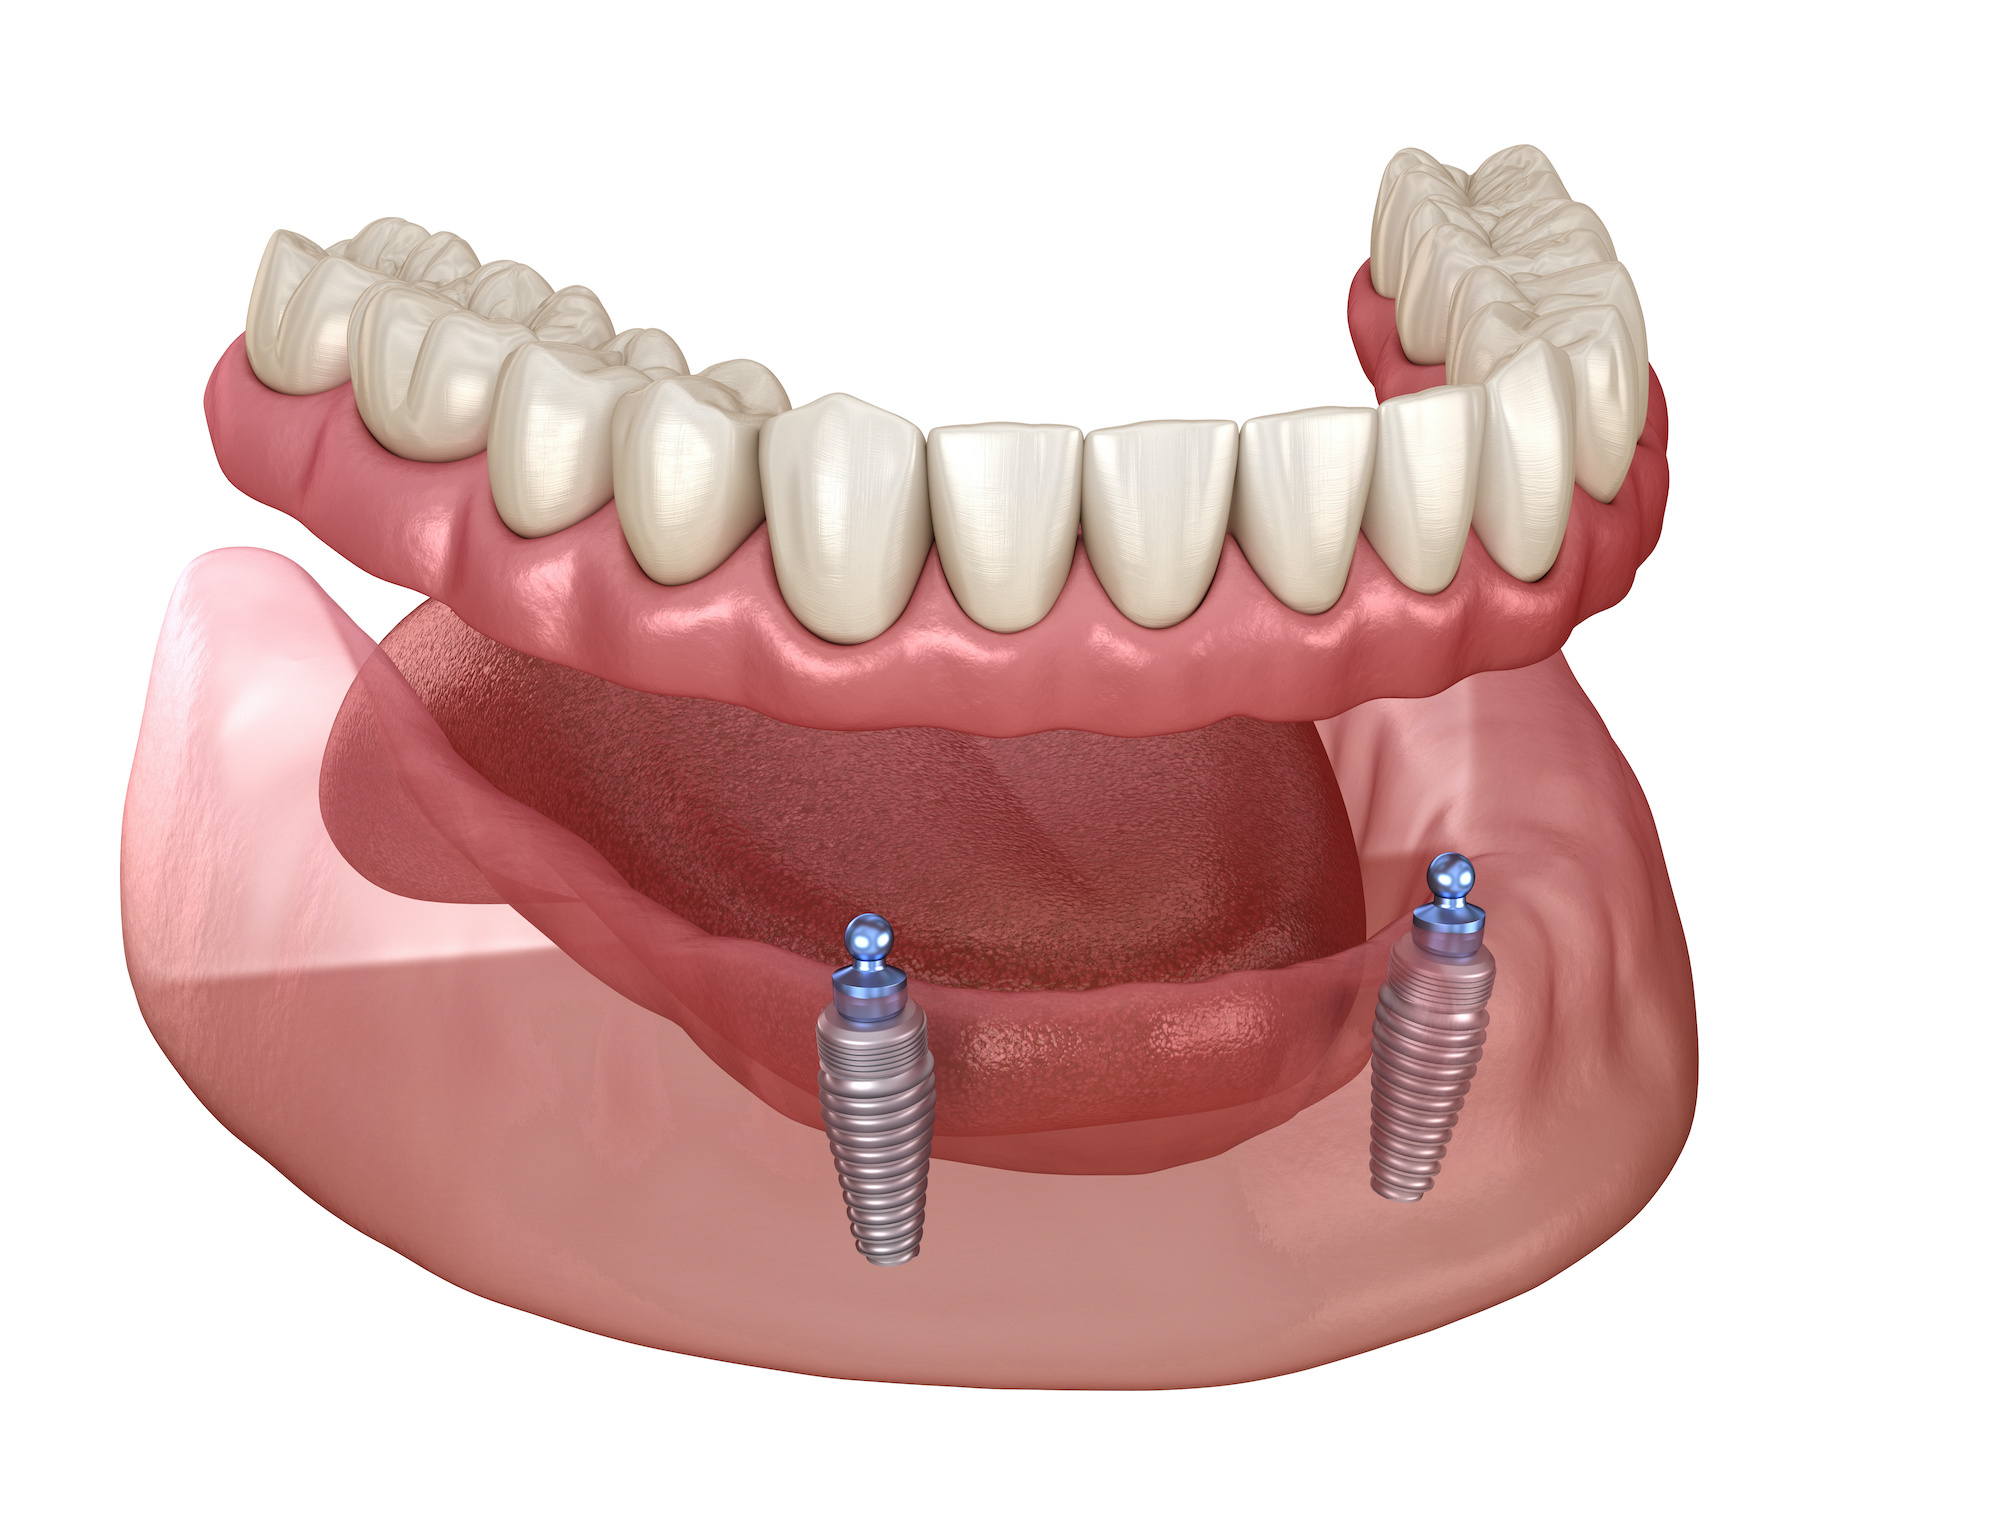 Dentures Vs. Implants: What's Right For You?